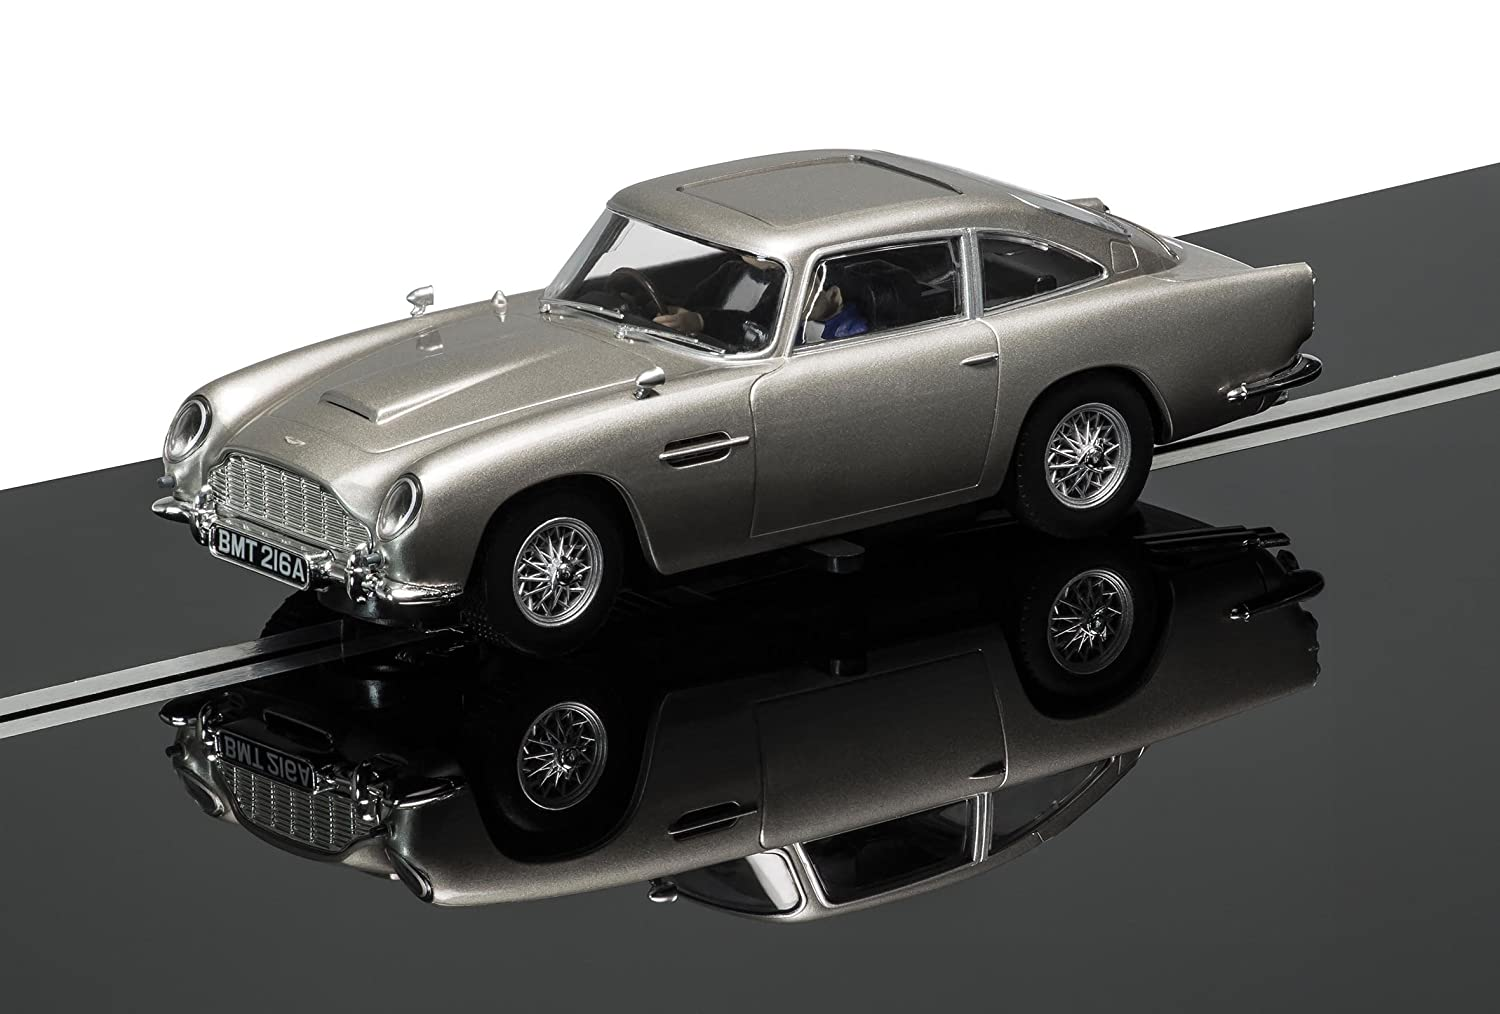 Scalextric 1:32 Scale James Bond Aston Martin DB5 Goldfinger Slot Car:  Amazon.co.uk: Toys U0026 Games